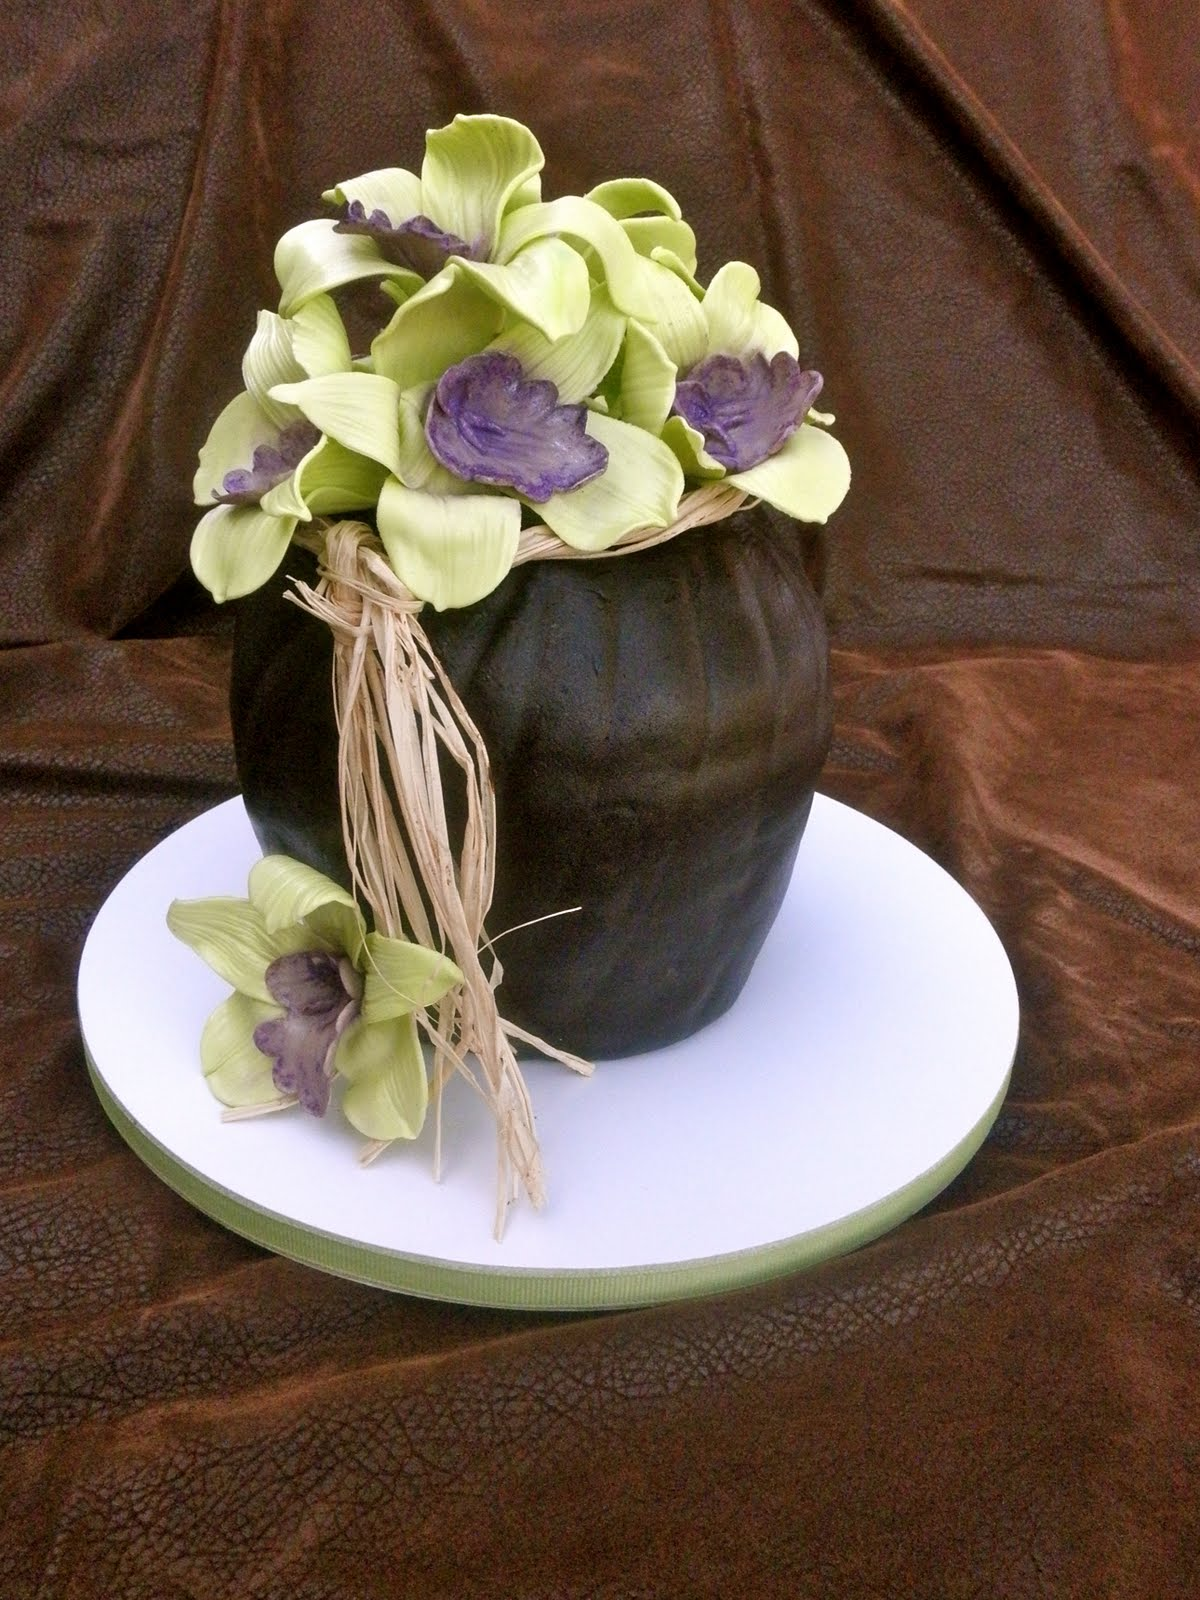 Sweet ts cake design sculpted orchid flower vase birthday cake alicia liked our sculpted flower vase cake we did for fran she wanted a smaller version that would serve 6 people at her moms birthday dinner party izmirmasajfo Image collections